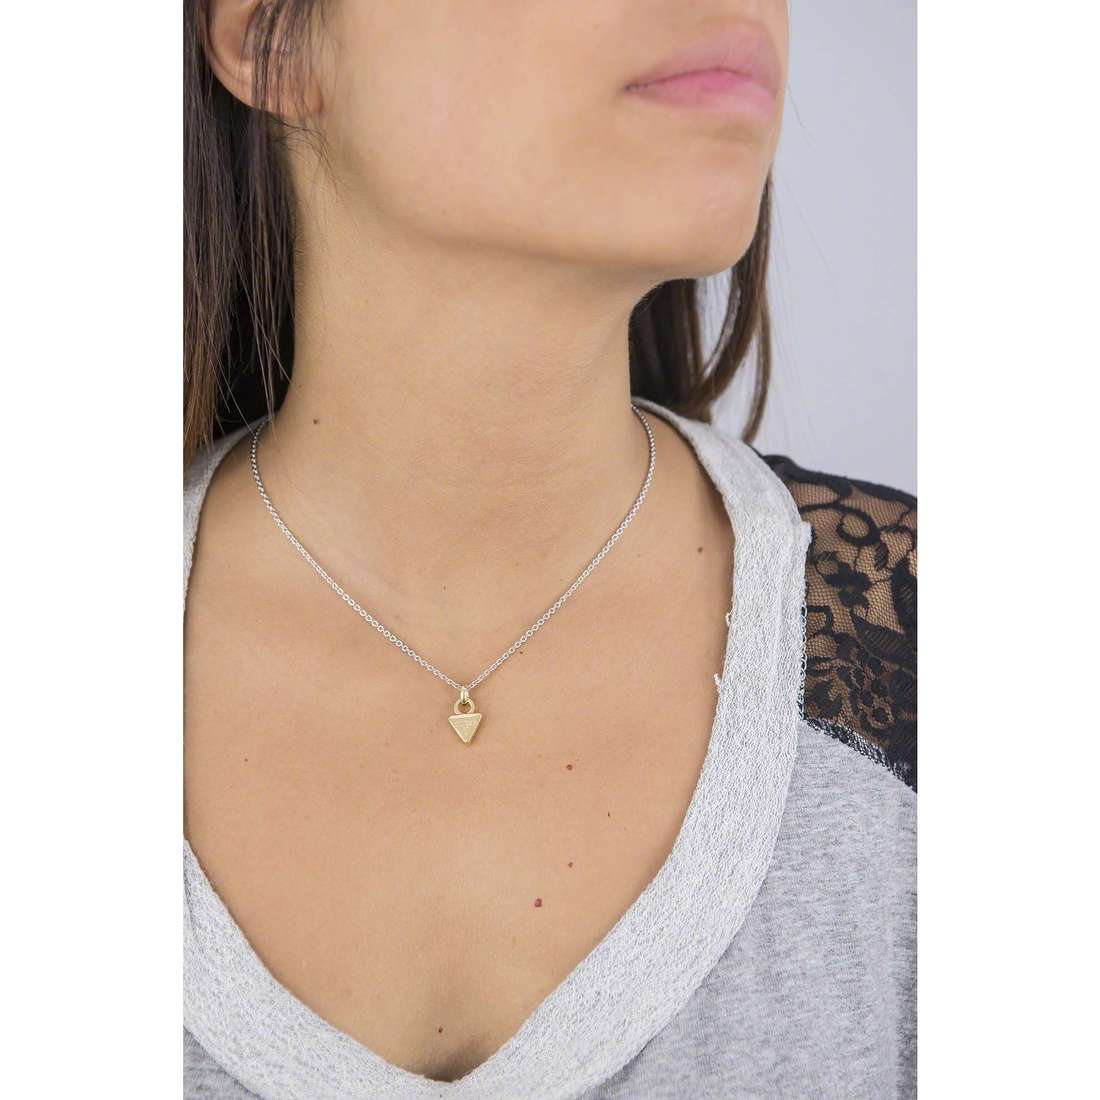 Guess necklaces woman UBN61102 indosso